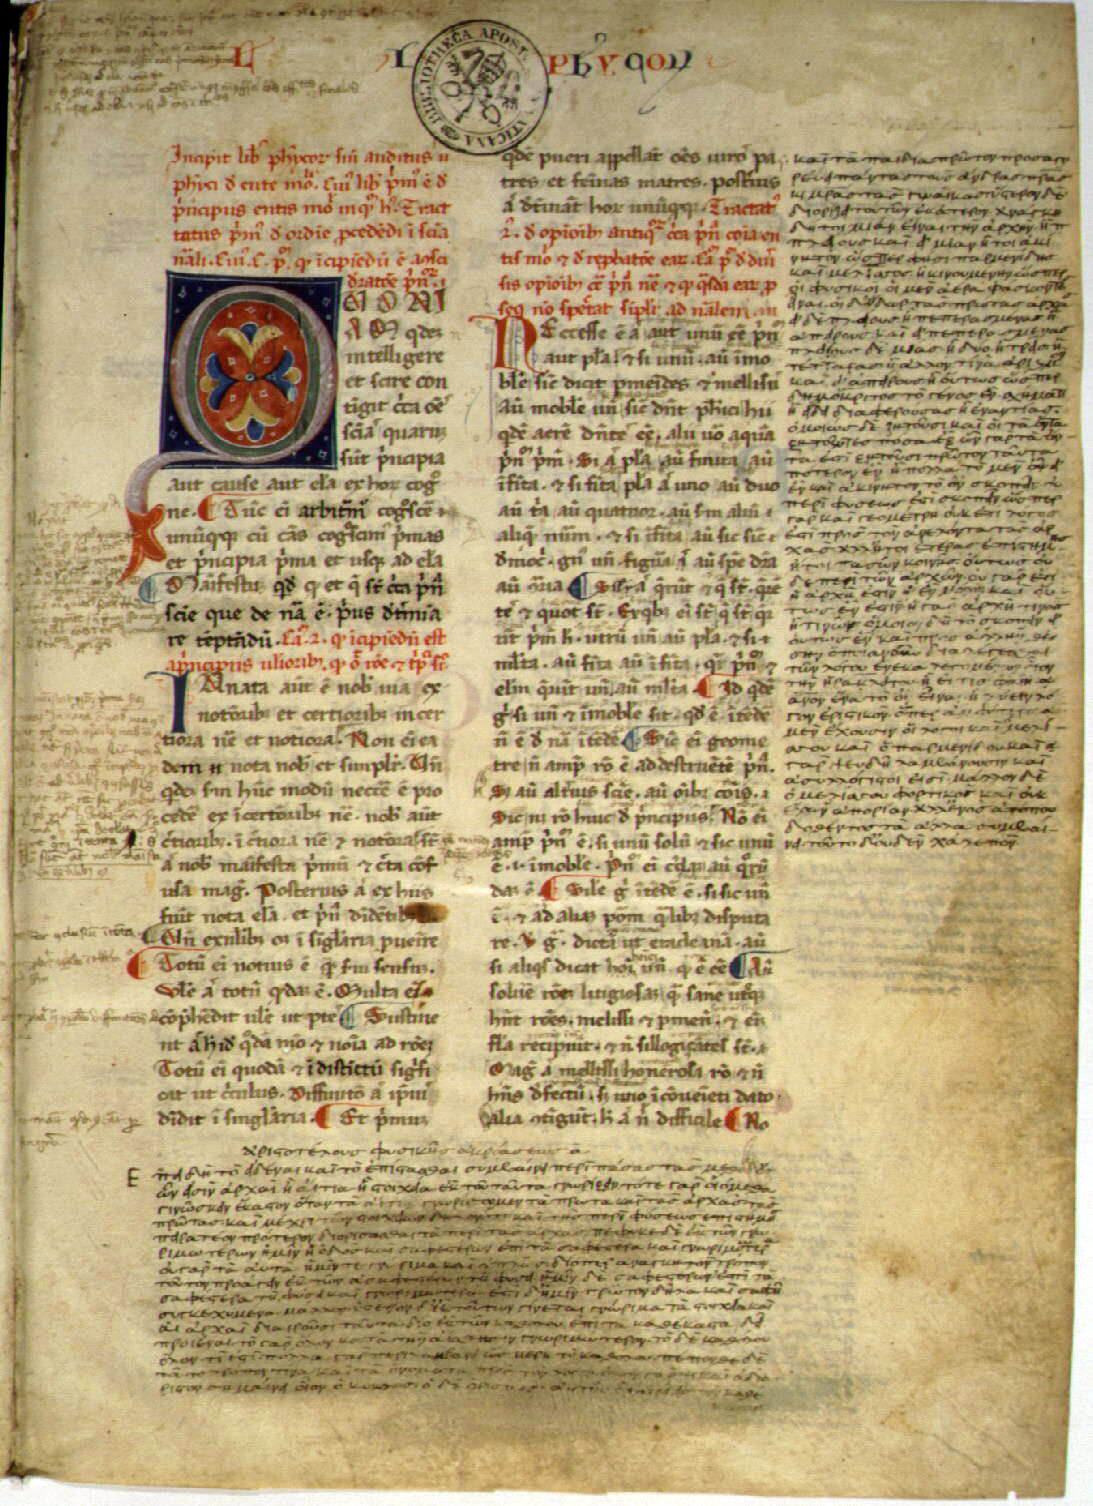 A handwritten copy of The Physics by Aristotle was preserved and probably re-copied in the Middle Ages. The main text is written in a Latin translation, but a second scribe wrote out the original Greek in the margin. (Image via Wikimedia Commons)